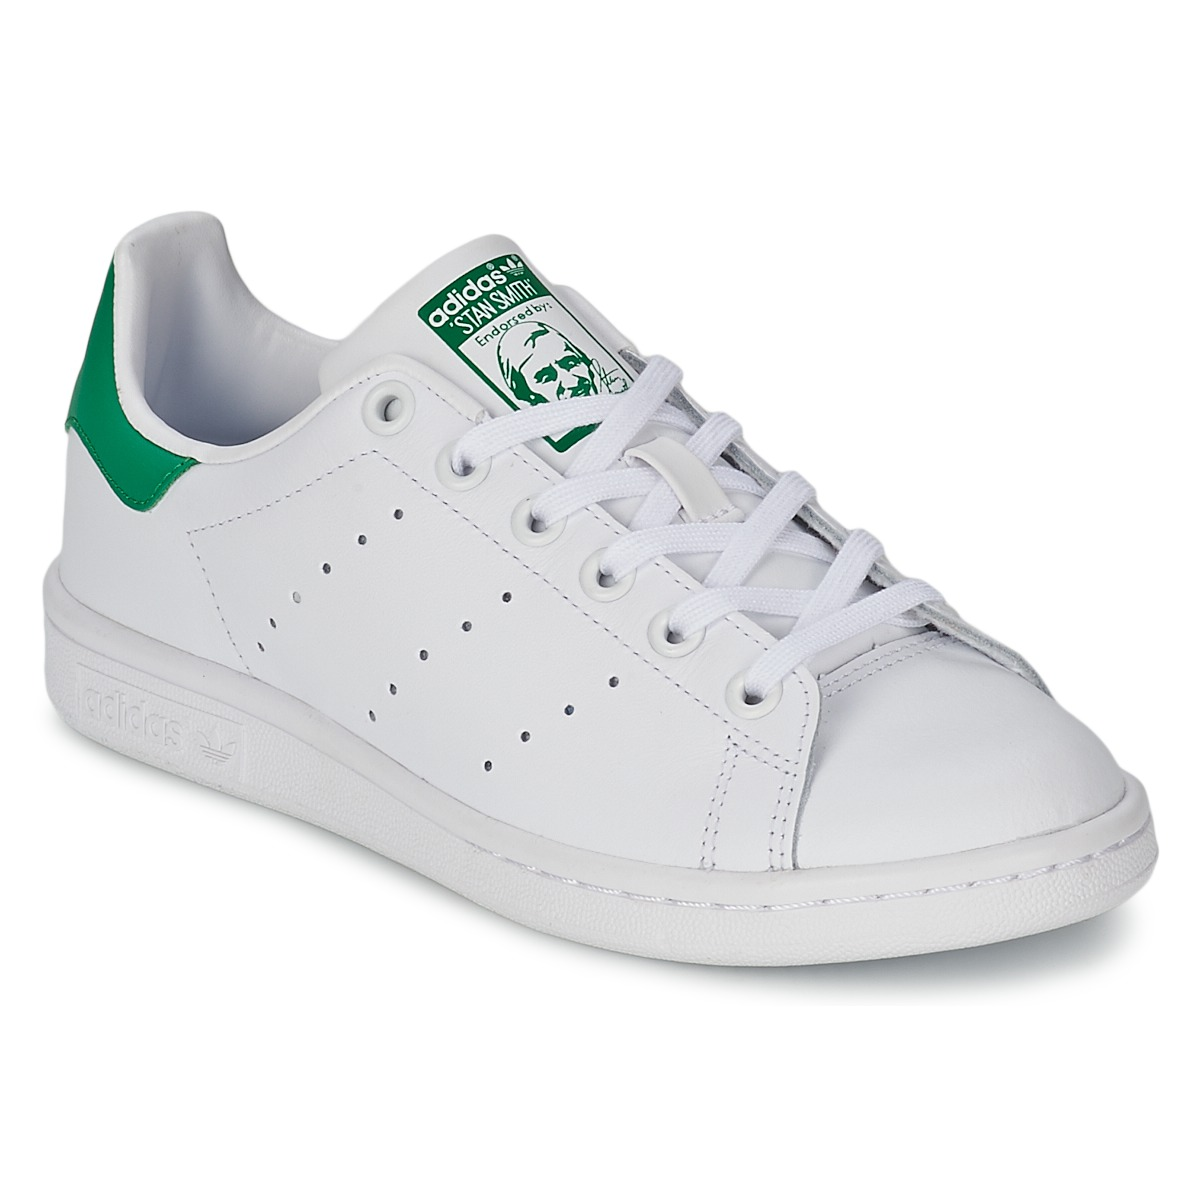 adidas originals stan smith j blanc vert chaussures baskets basses enfant 58 30. Black Bedroom Furniture Sets. Home Design Ideas